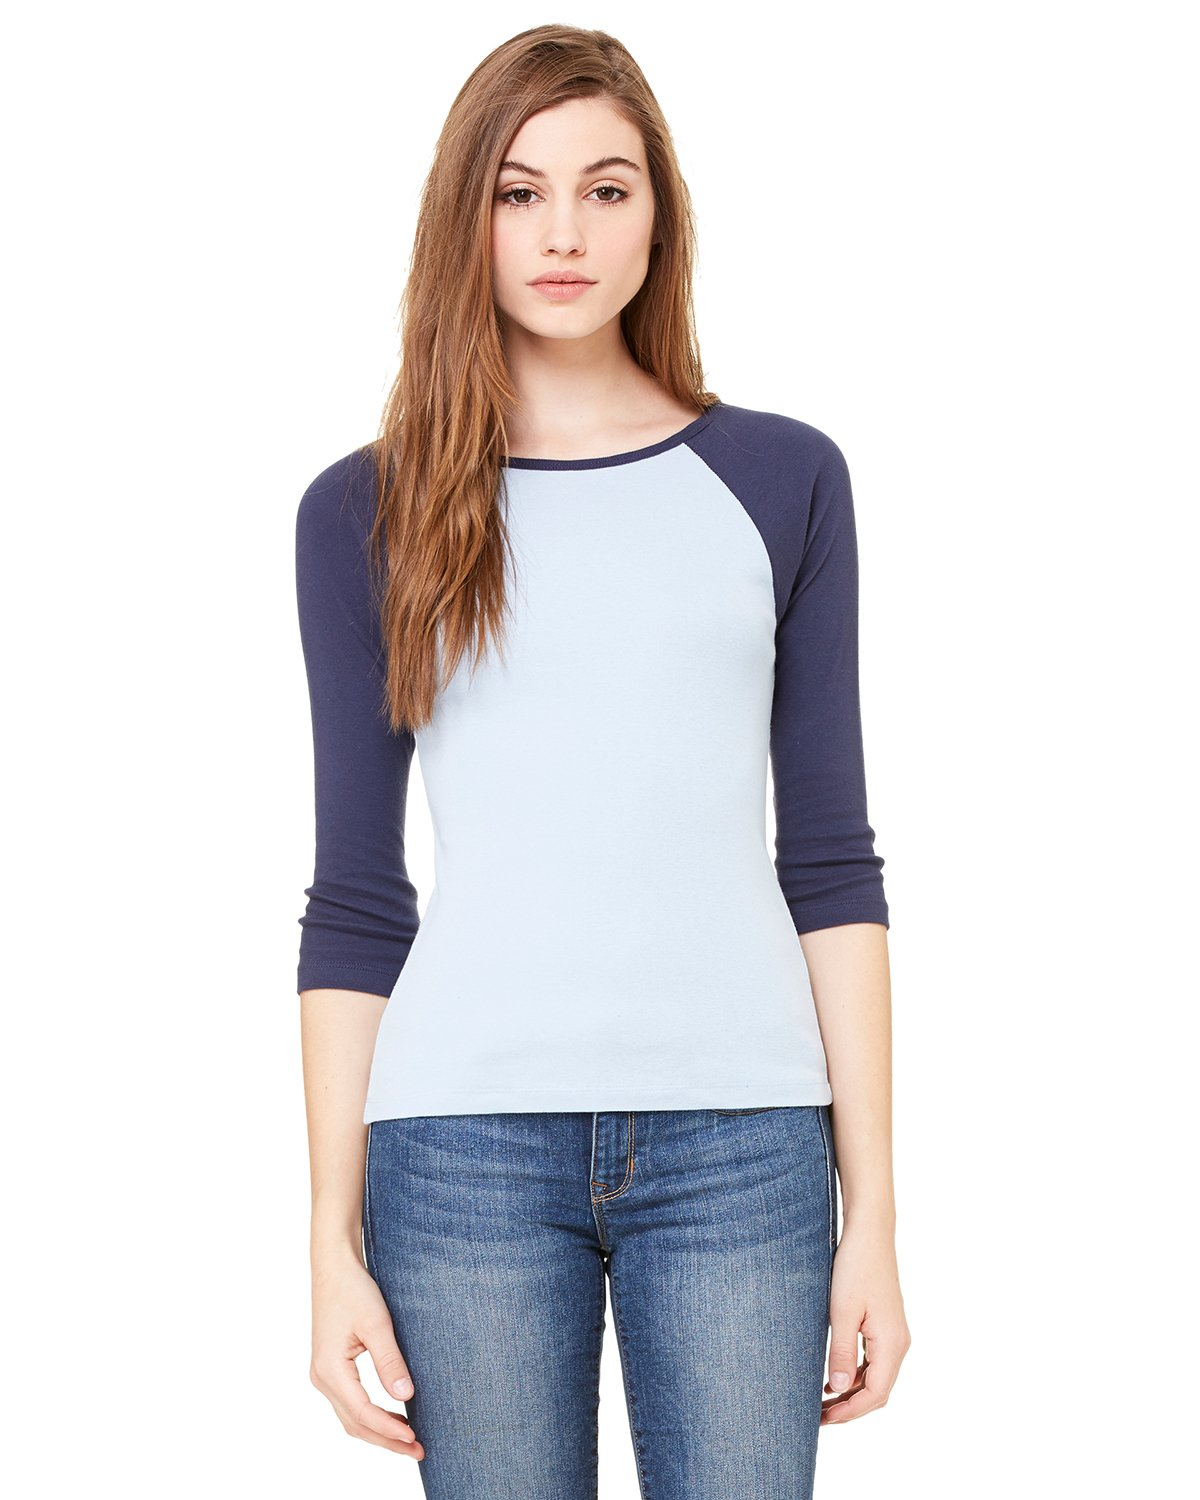 Bella + Canvas - B2000 - Ladies' Baby Rib 3/4-Sleeve Contrast Raglan T-Shirt